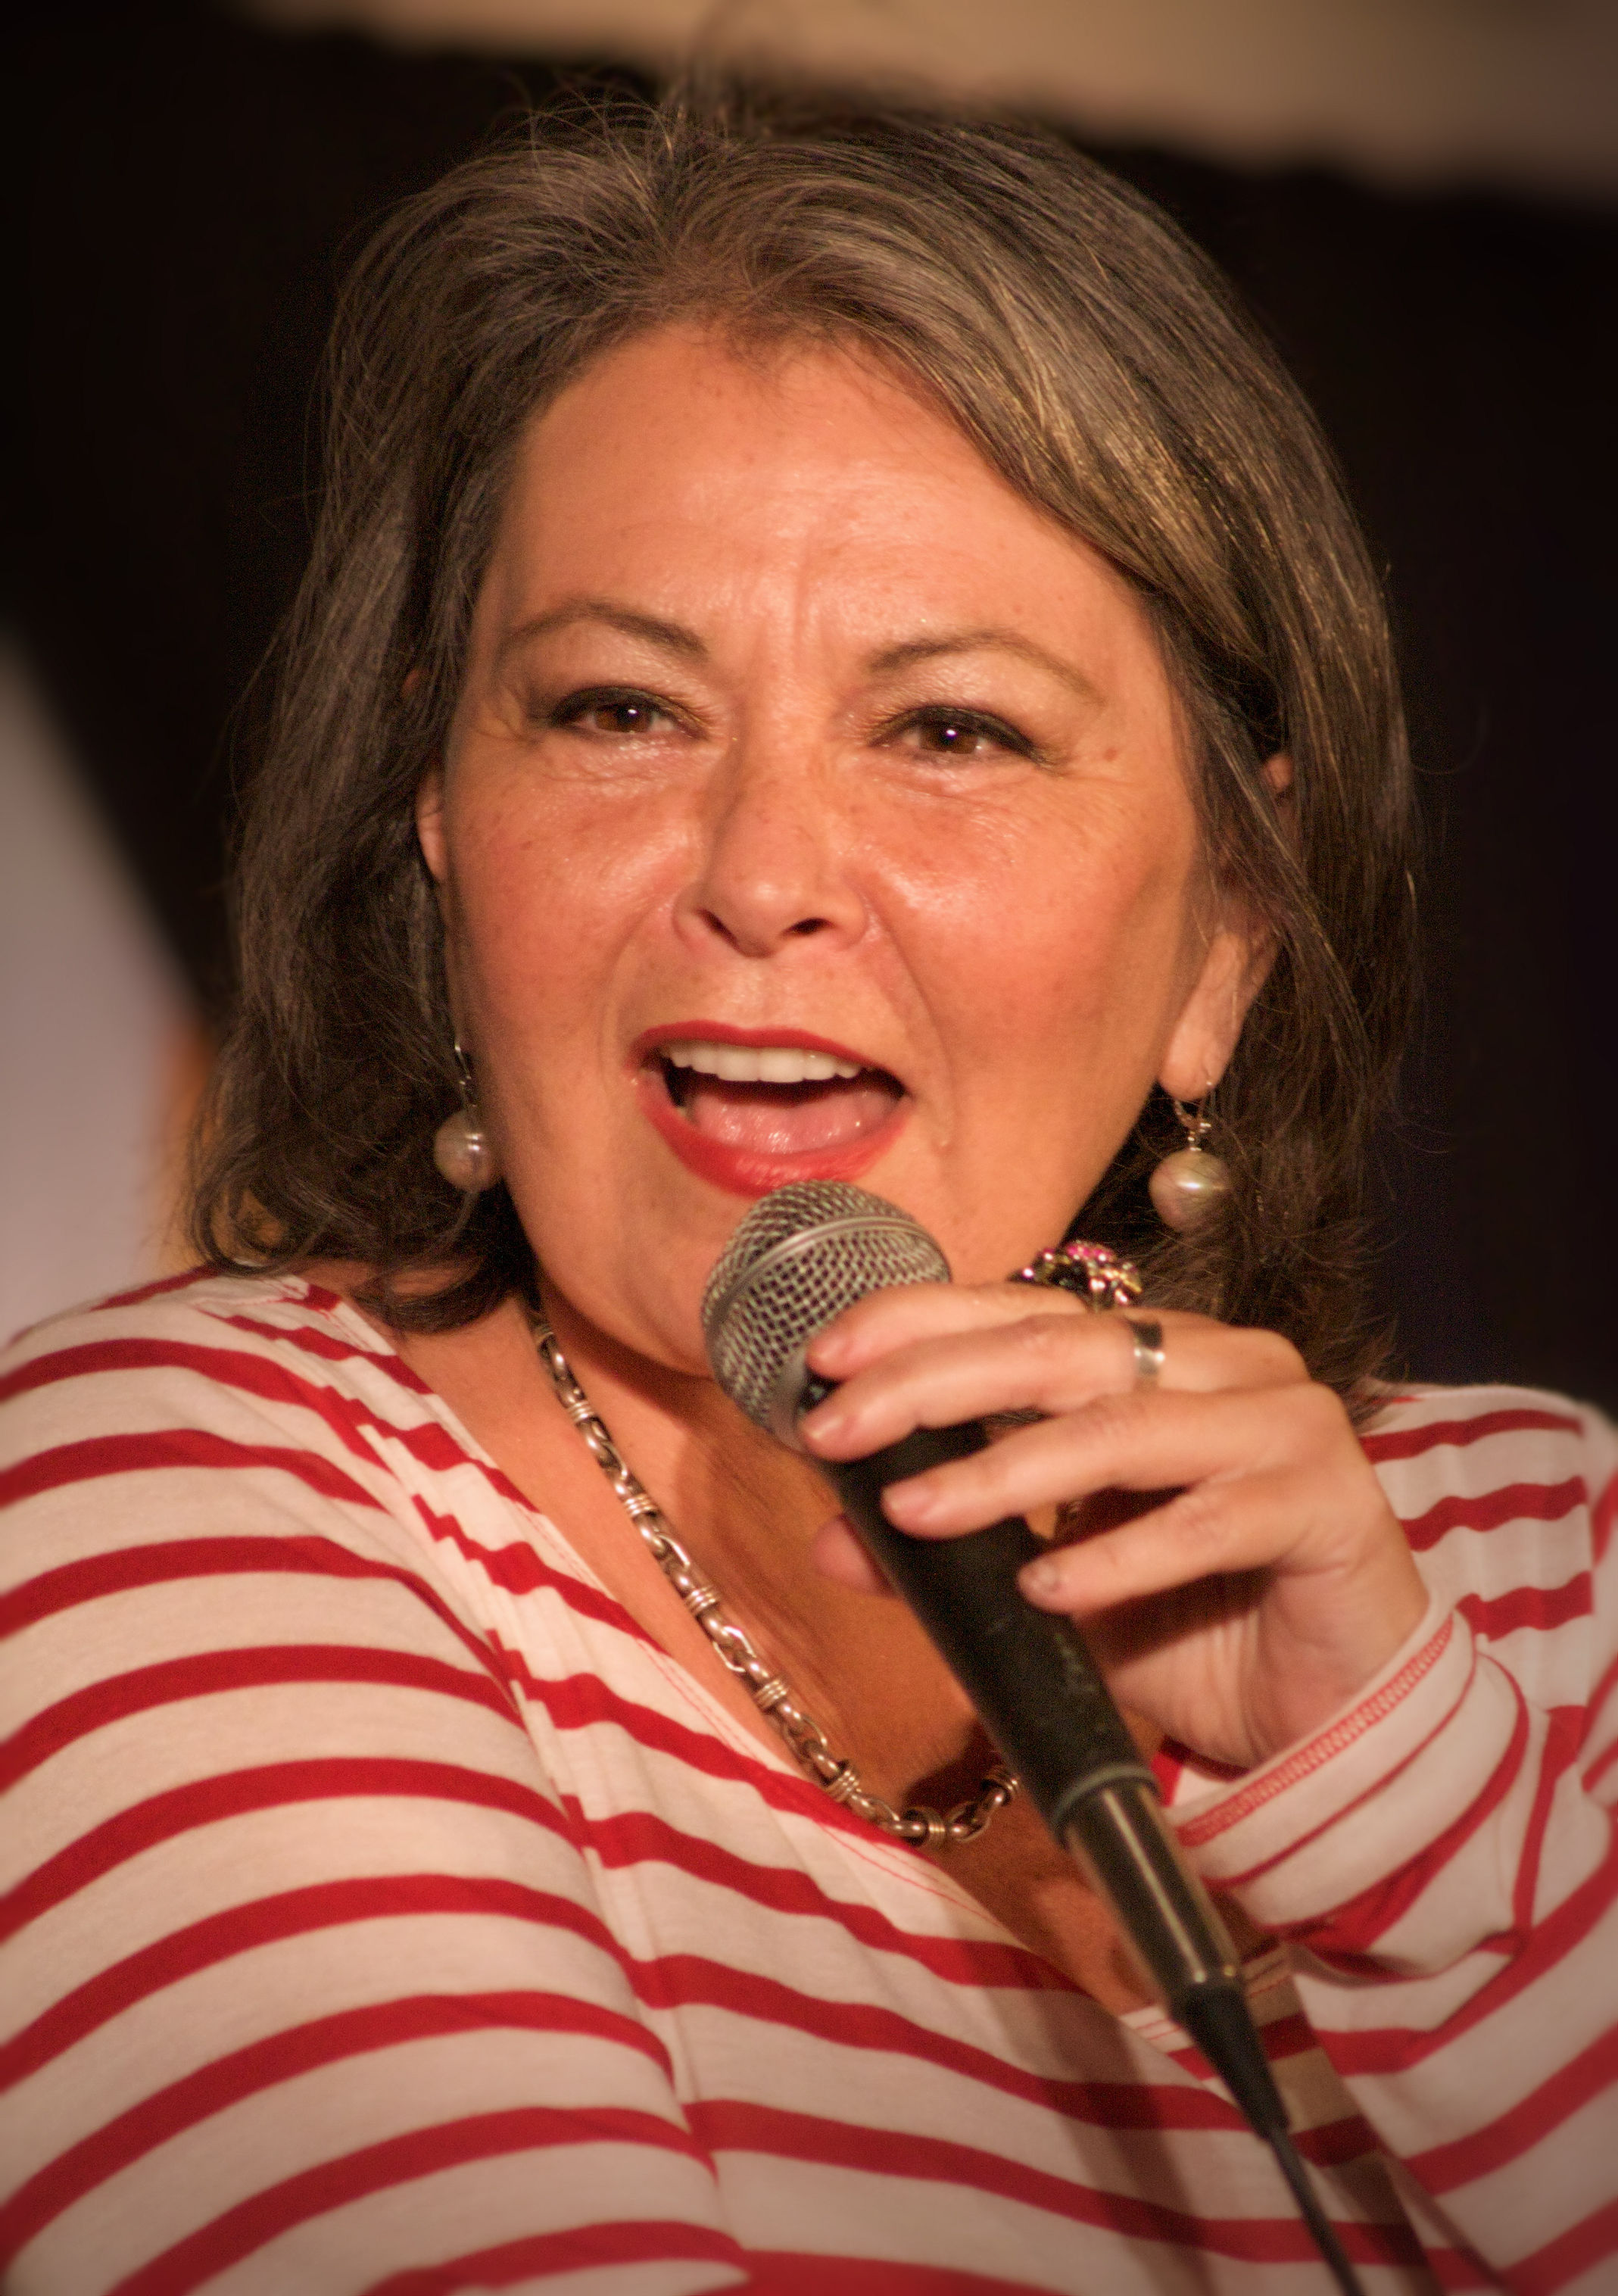 The 65-year old daughter of father Jerome Hershel Barr and mother Helen Davis Roseanne Barr in 2018 photo. Roseanne Barr earned a  million dollar salary - leaving the net worth at 80 million in 2018